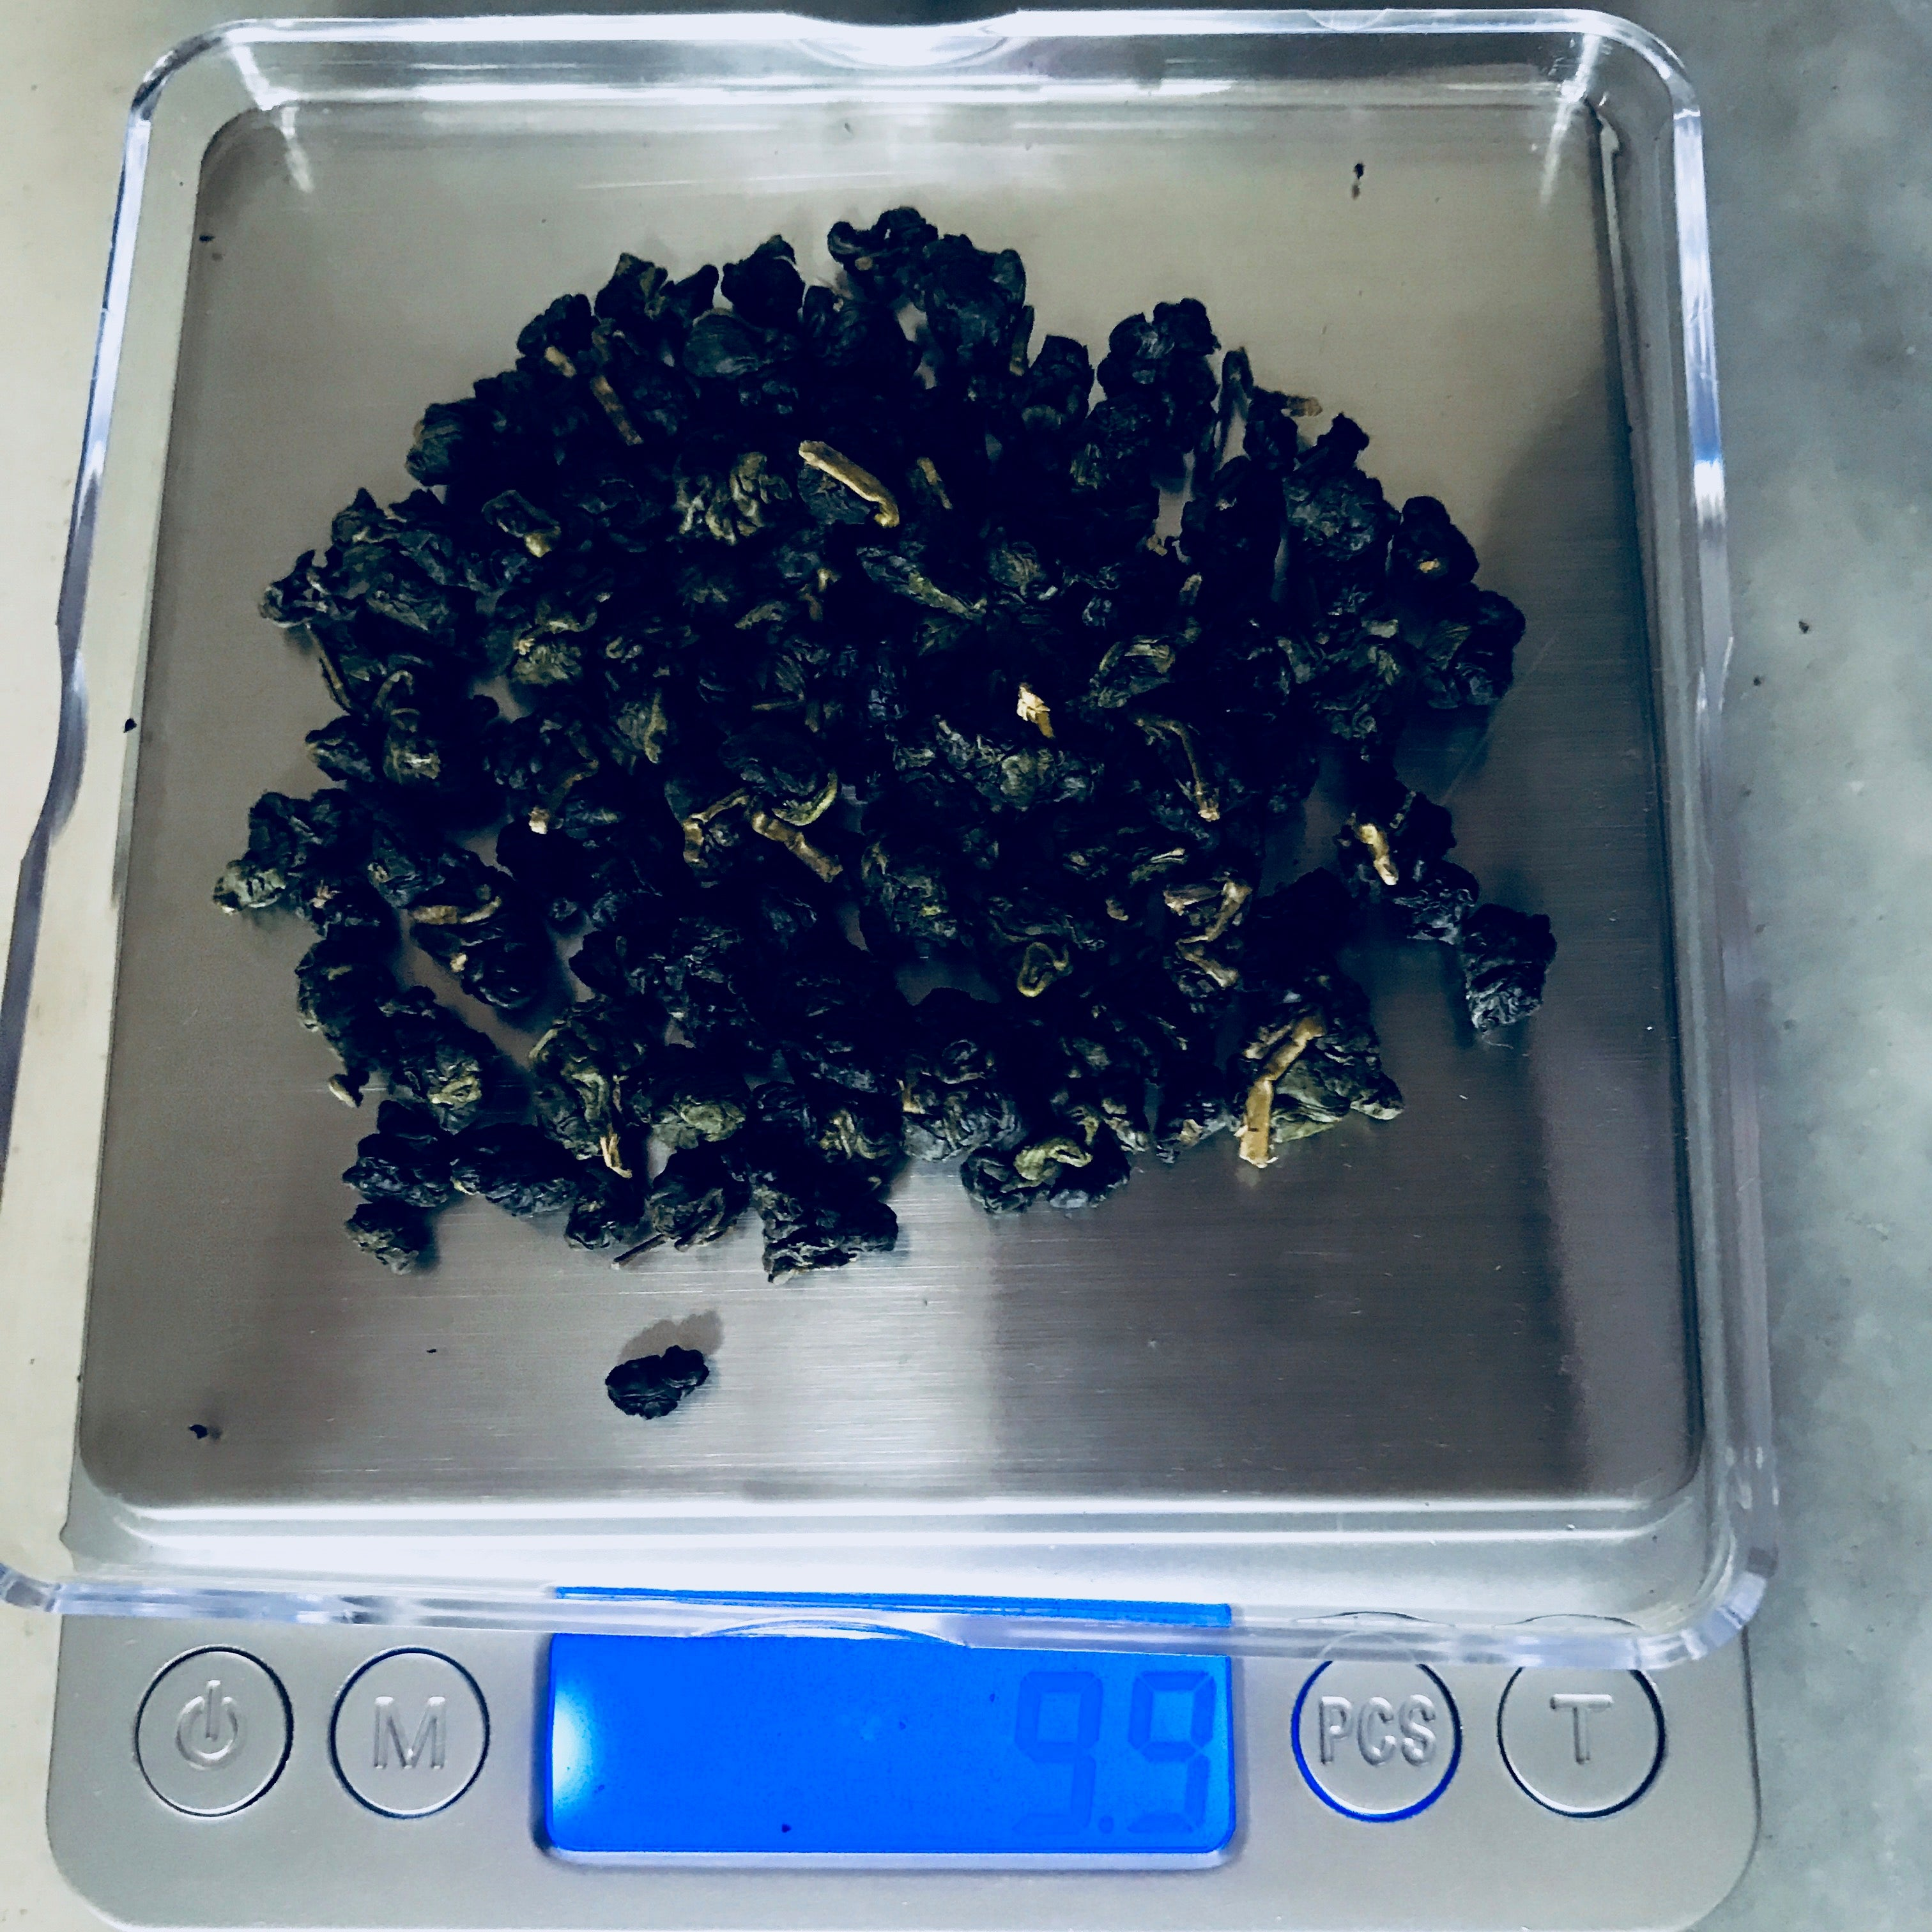 Weighing out the proper amount of loose leaf oolong tea for Gong Fu brewing